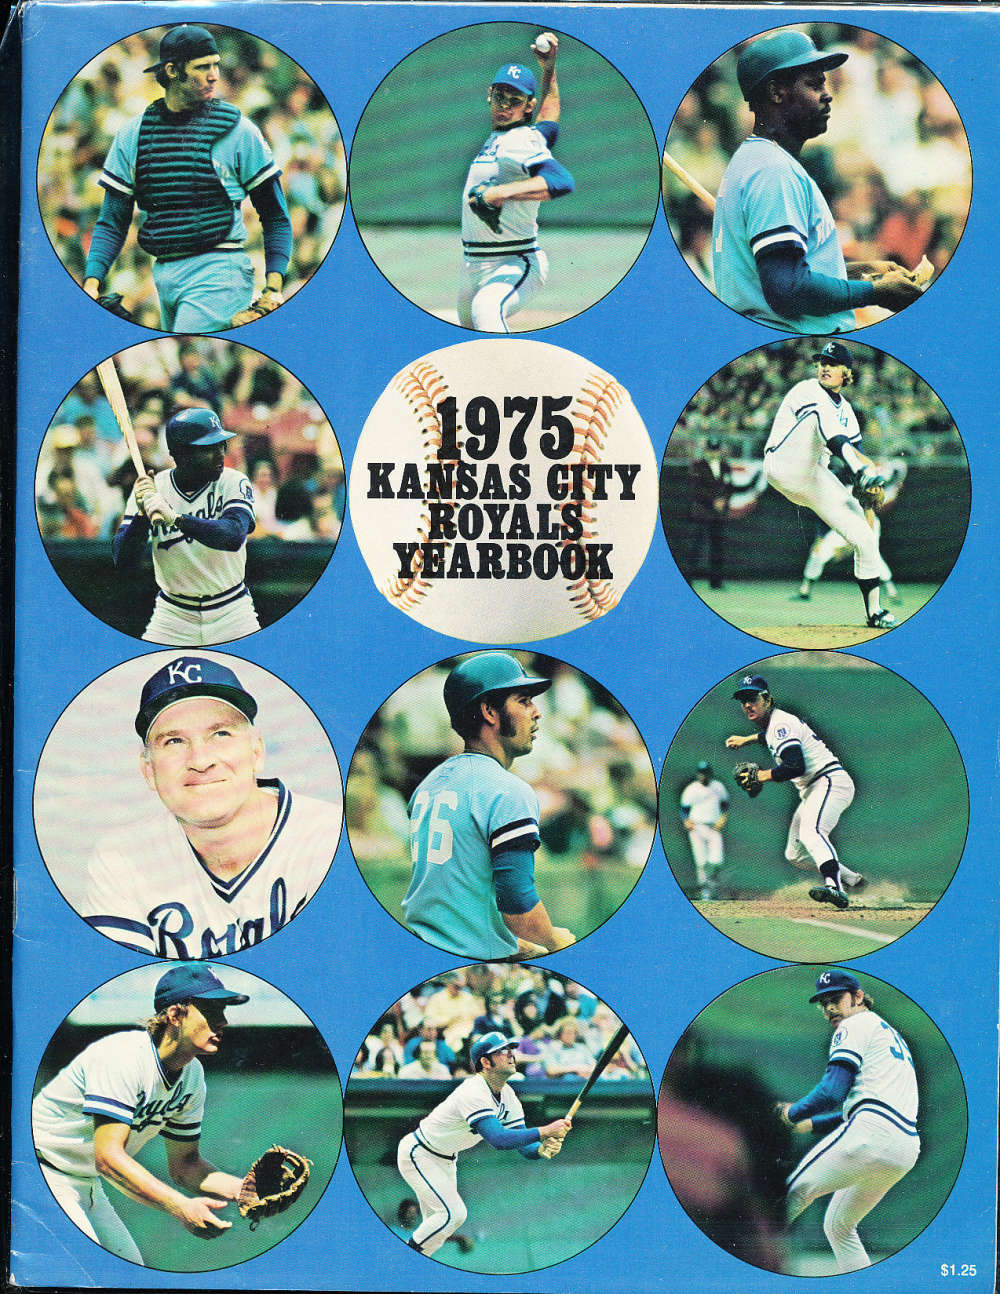 1975 Kansas city Royals baseball yearbook